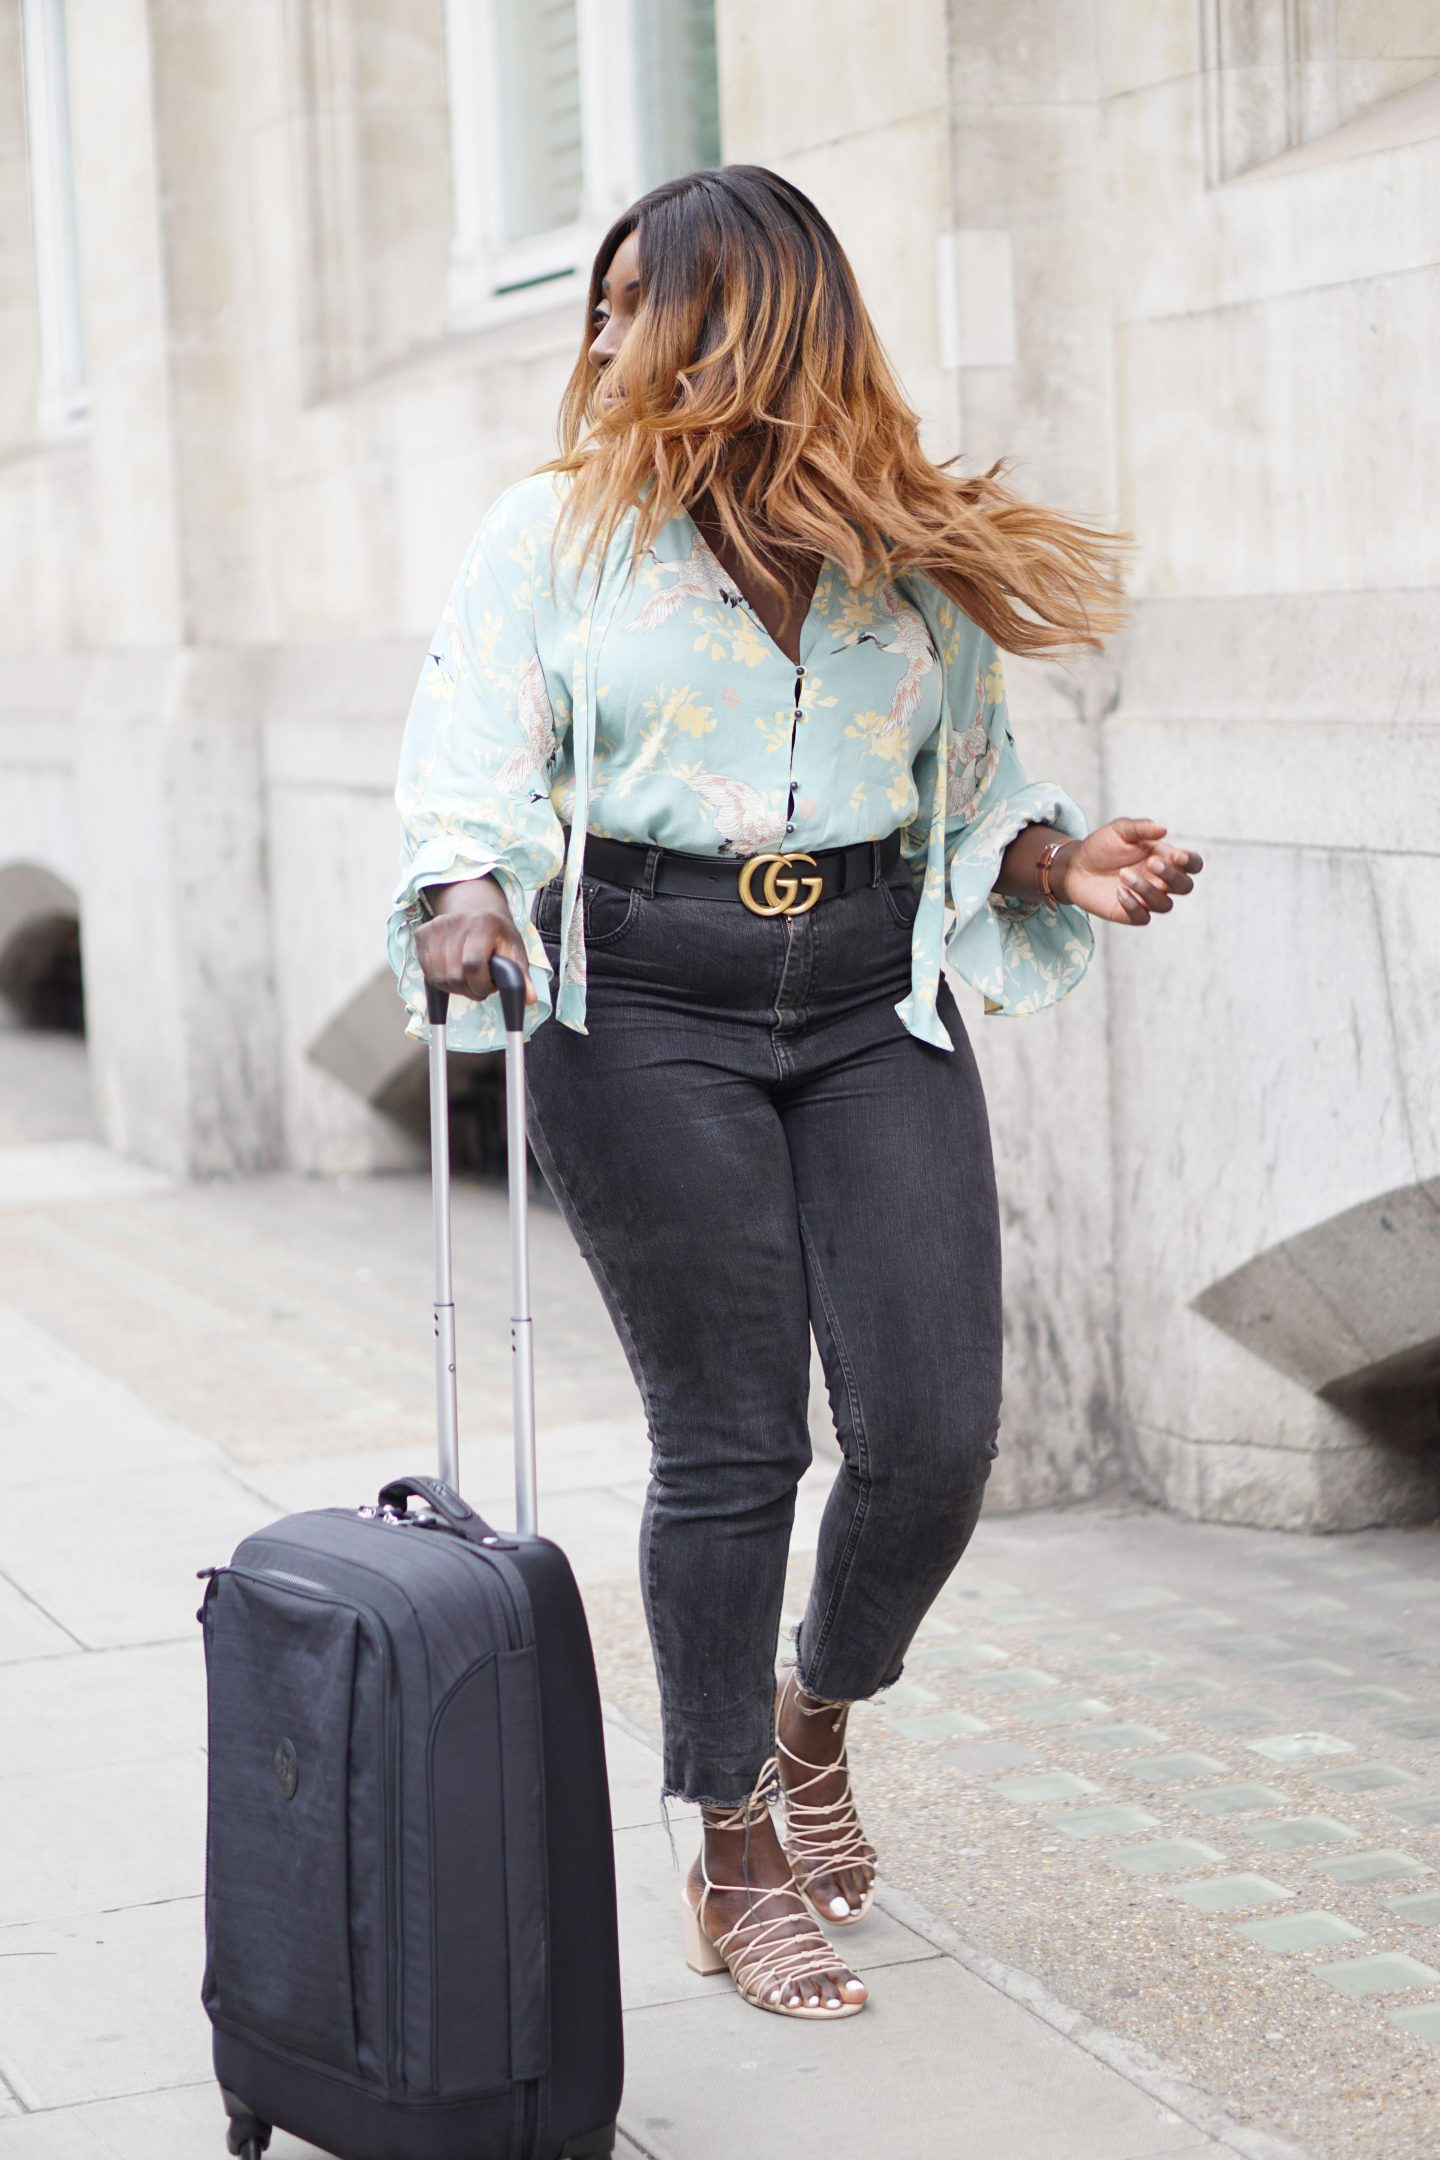 Business Travel Essentials with Kipling 2 -SUPER HYBRID S Cabin Size Wheeled Luggage - Gucci Belt - Zara Blouse - Style and the Sass